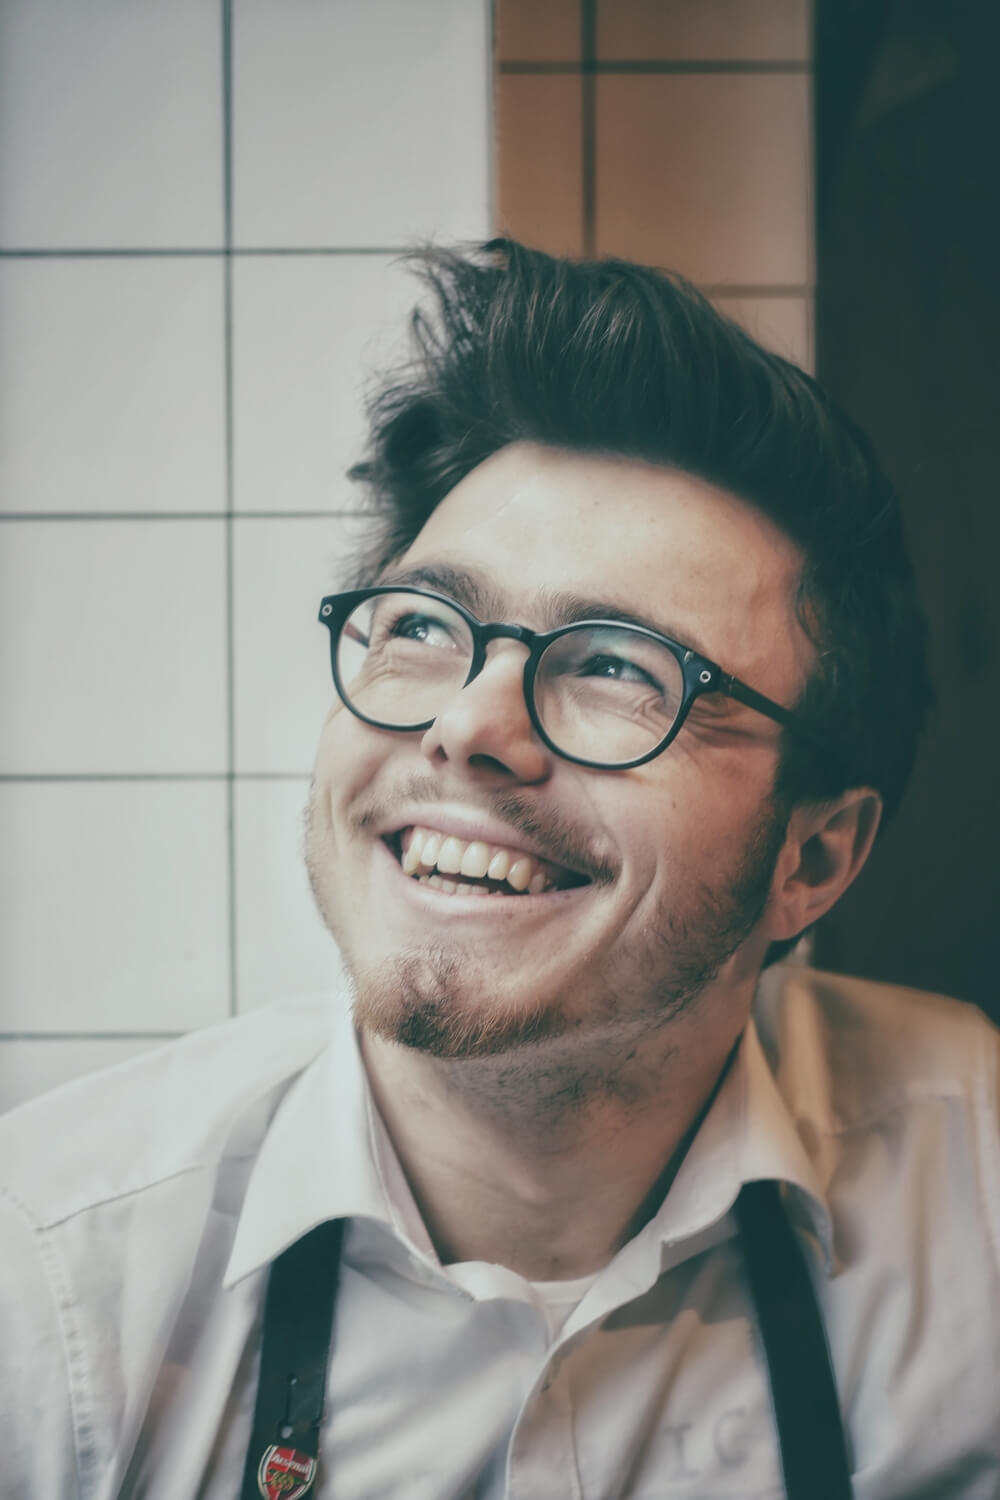 young man smiling with glasses